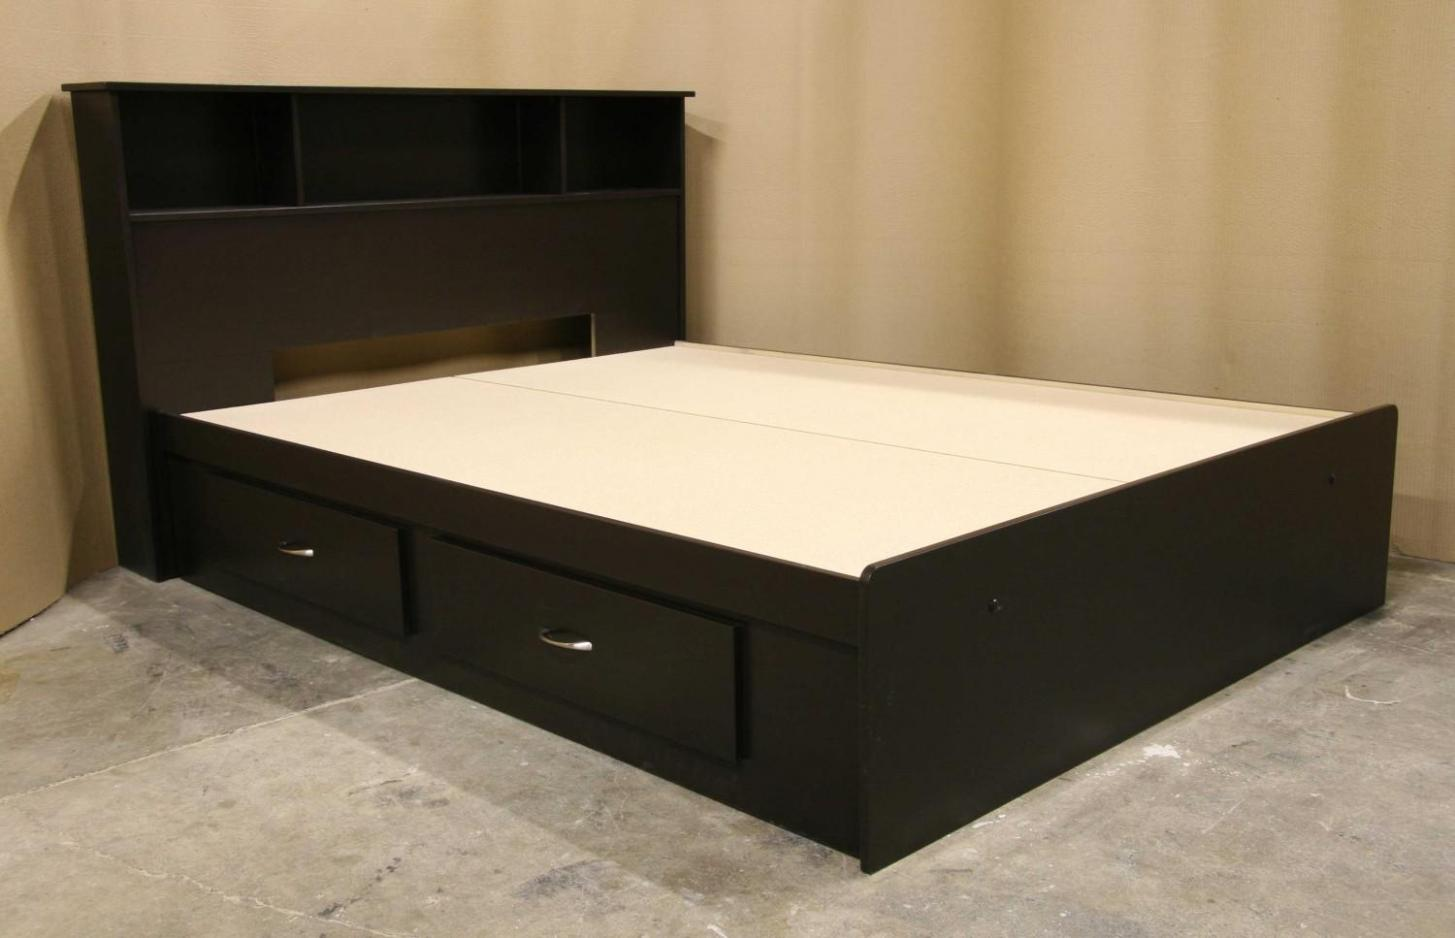 Image of: Queen Bed Frame With Drawers Underneath